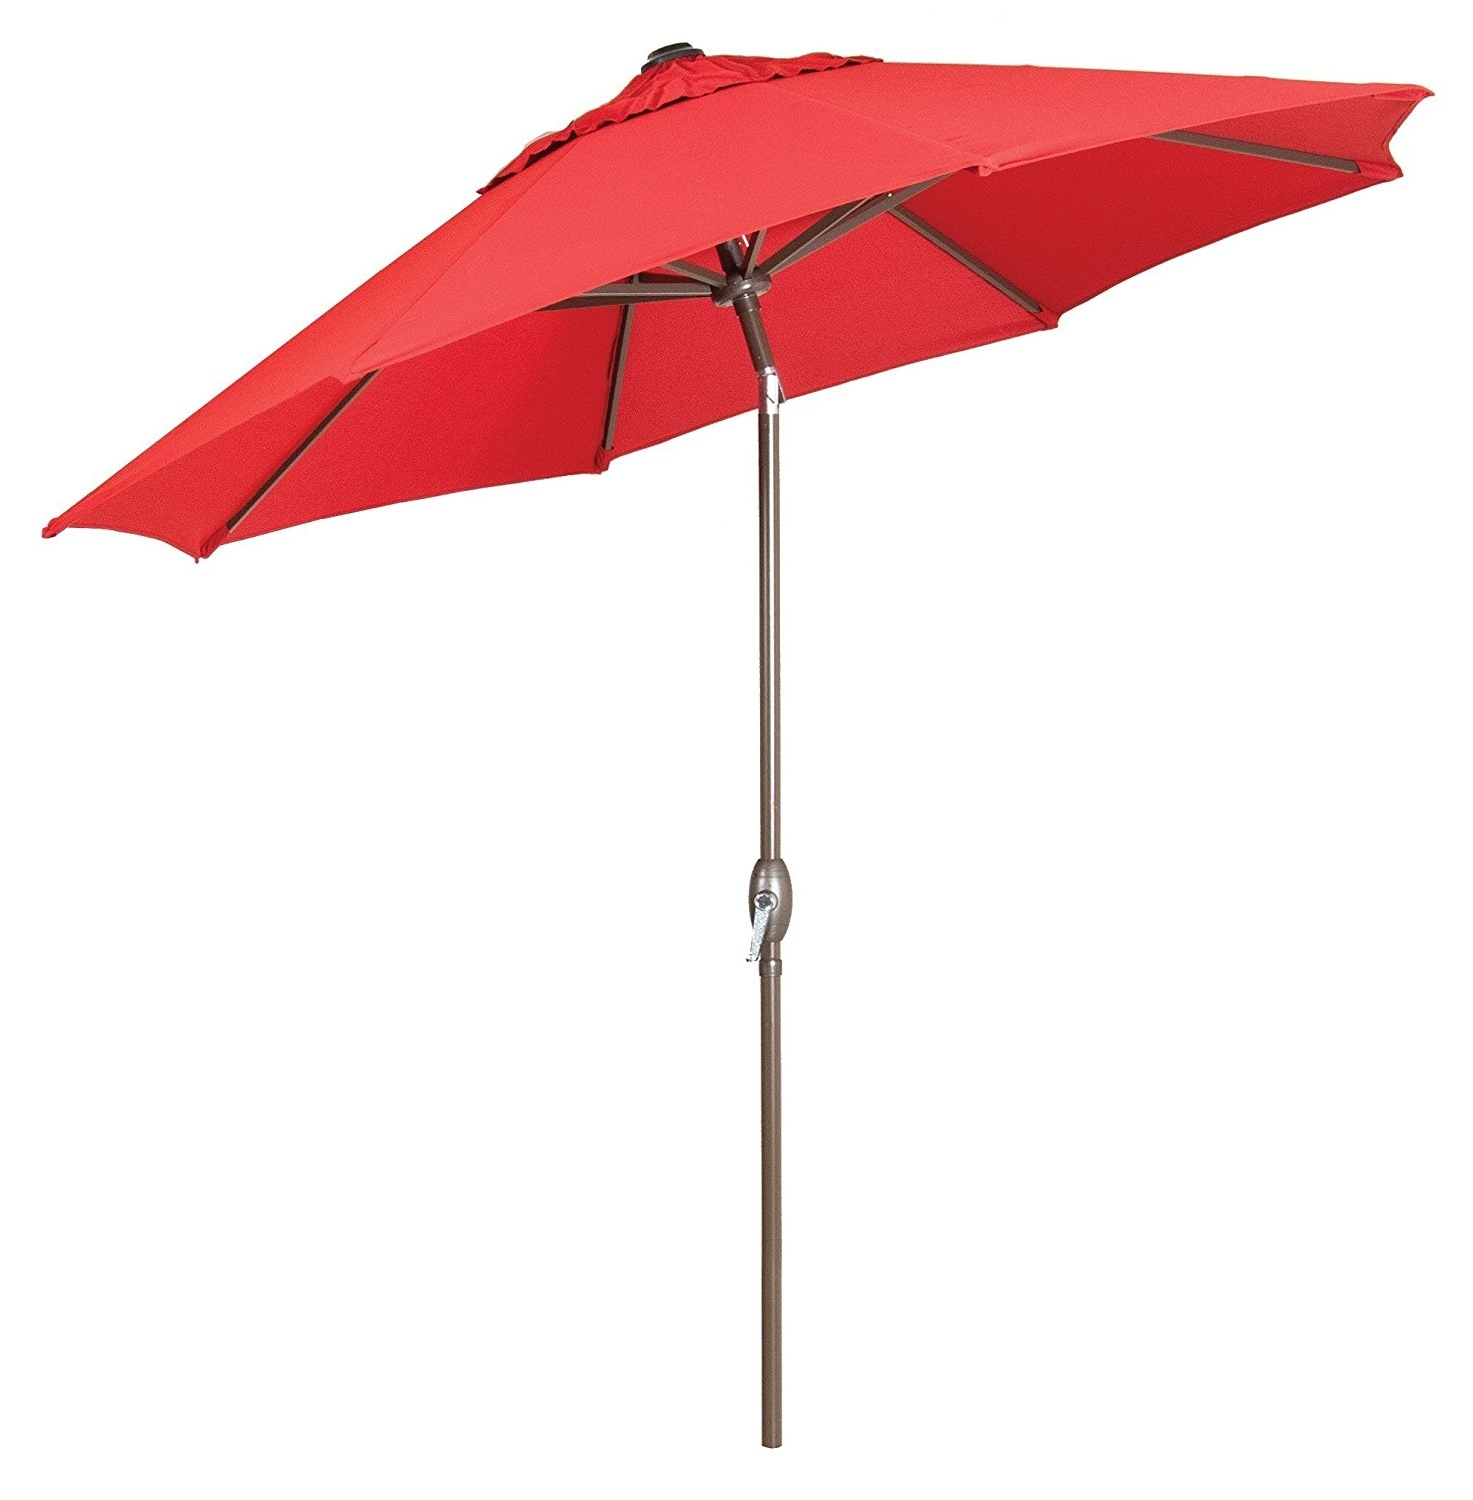 Premium Market Outdoor Patio Umbrella  Bright Red (Crank & Tilt Pertaining To Fashionable Sunbrella Patio Umbrellas At Walmart (View 10 of 20)